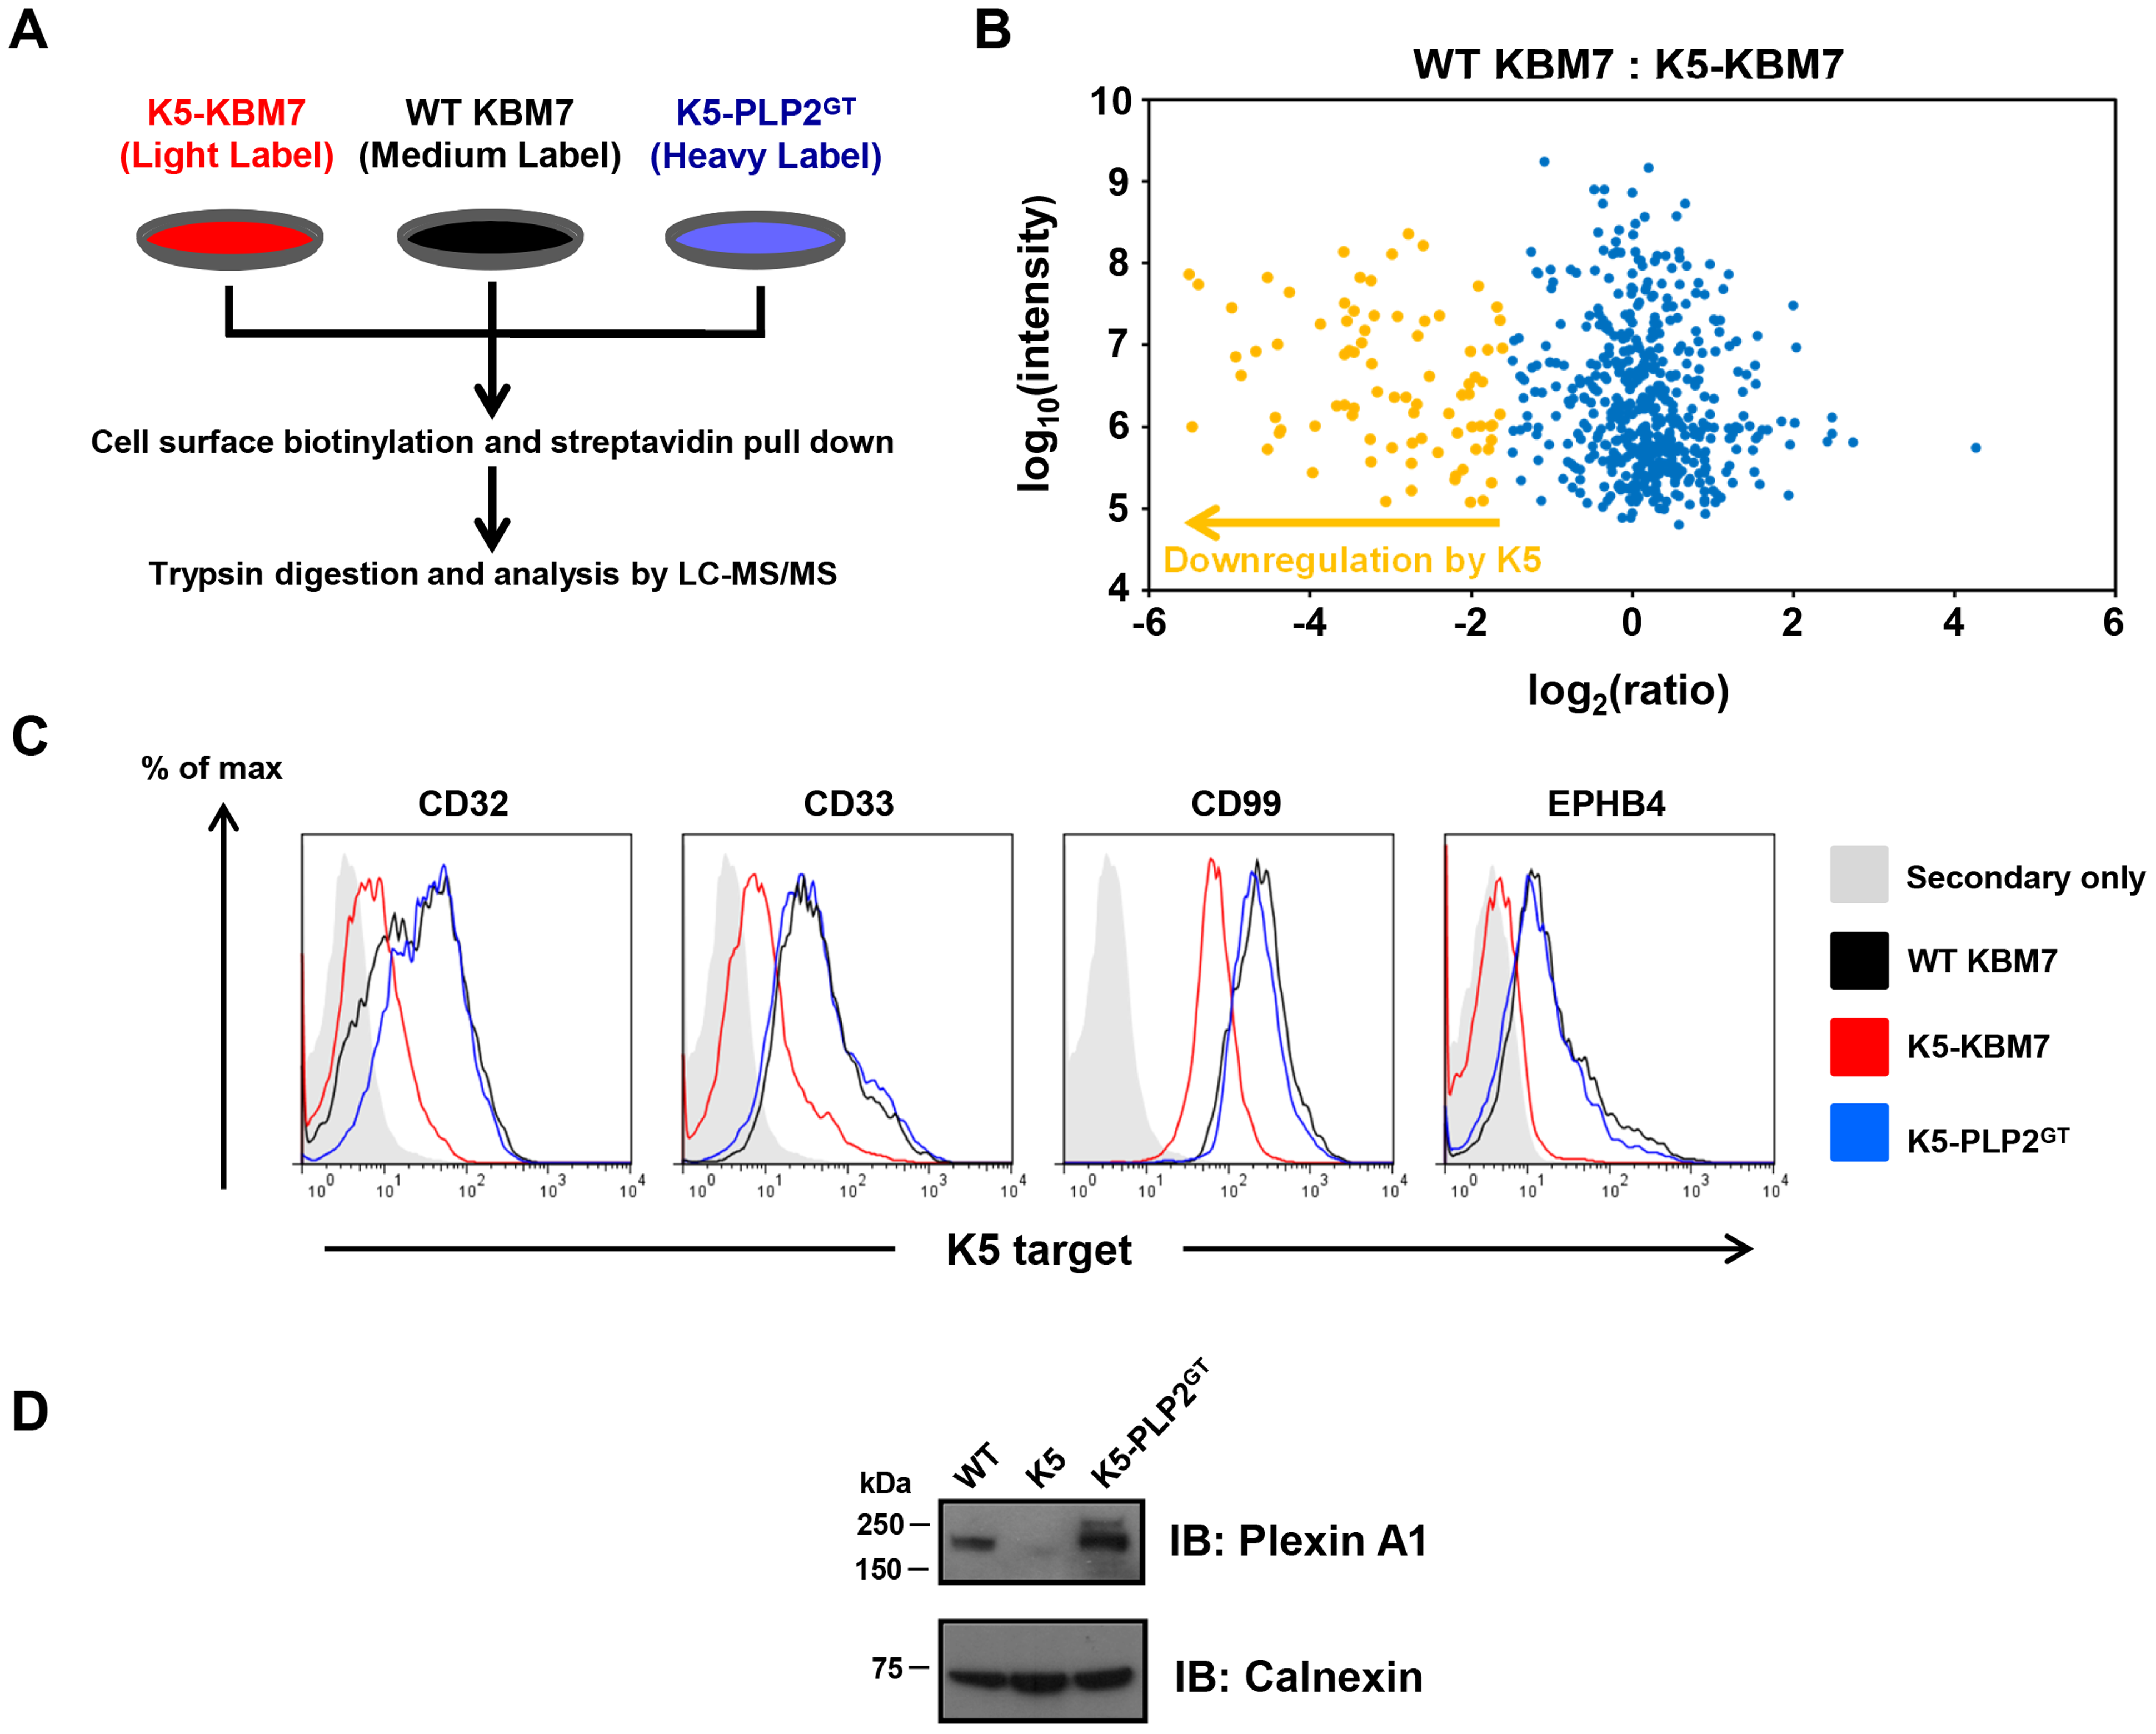 PLP2 is required for the downregulation of novel K5 targets.